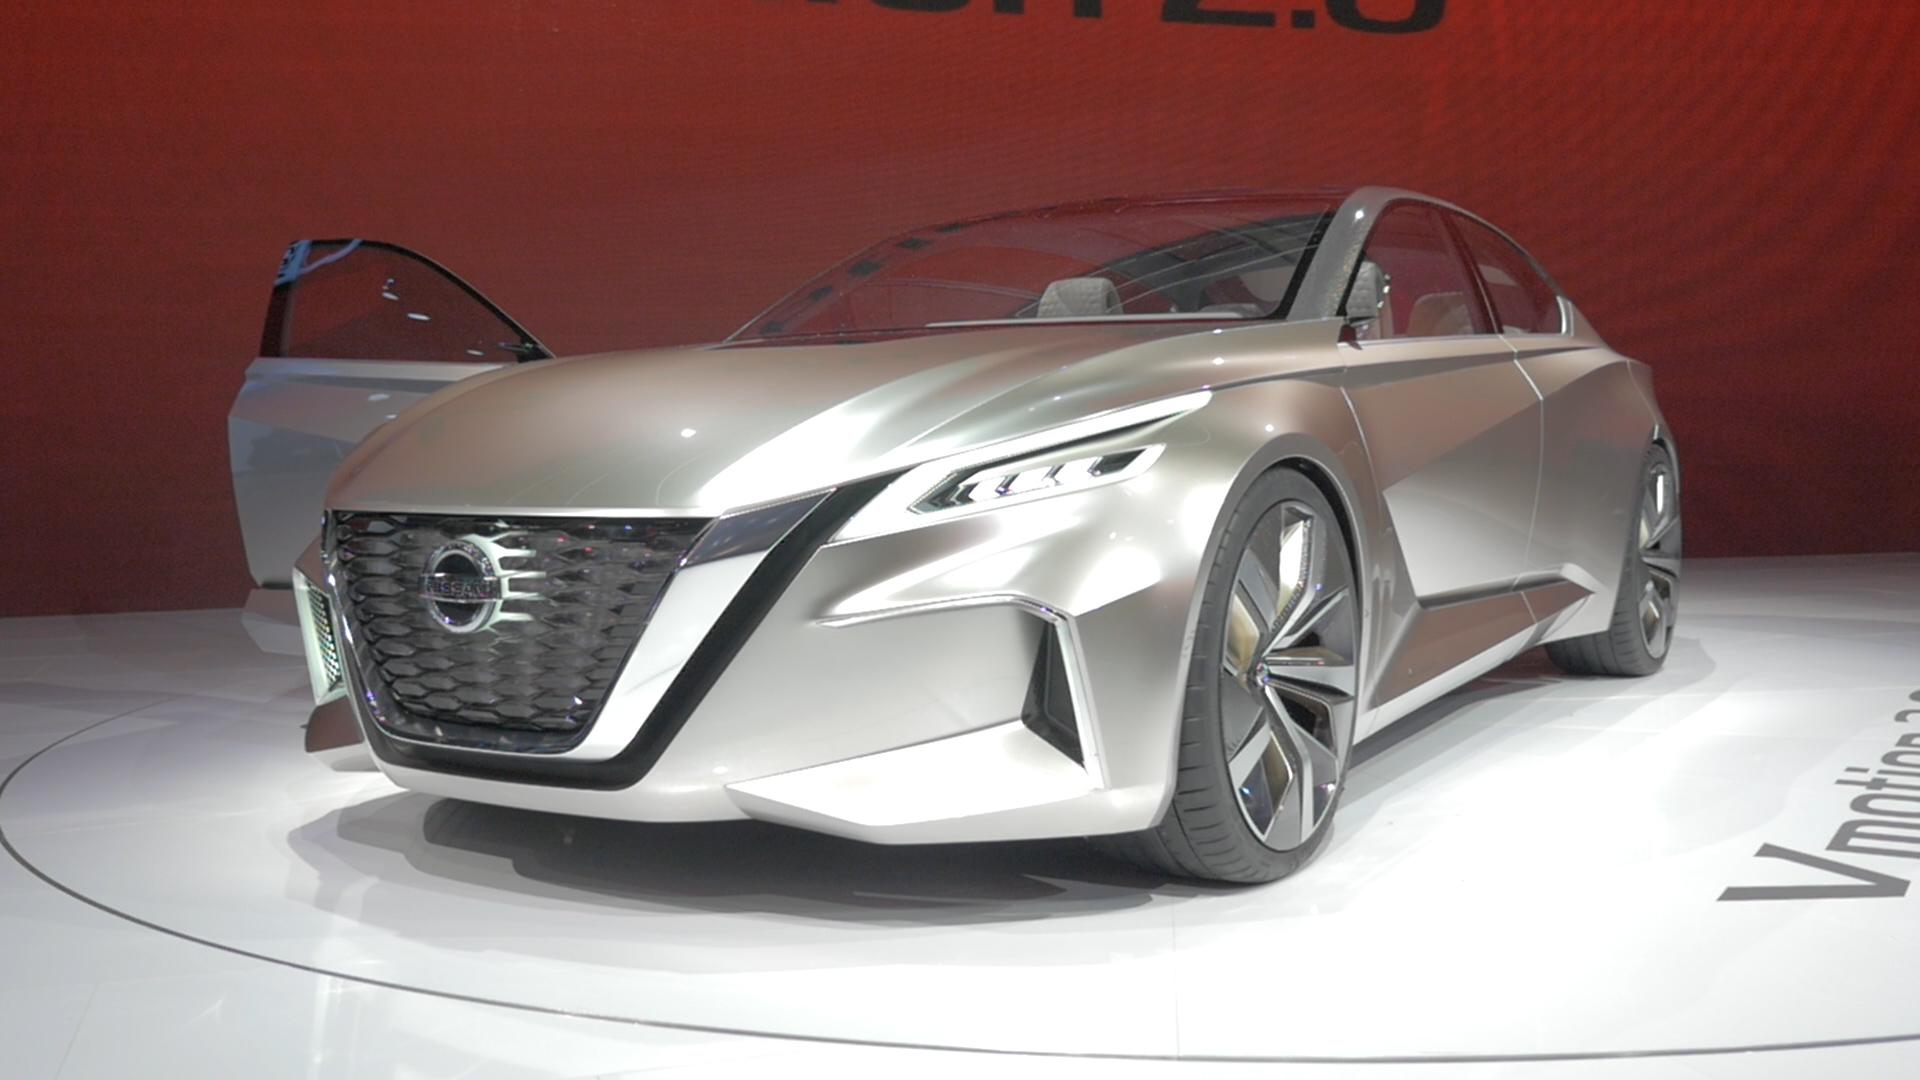 Redesigned Nissan Altima To Be Revealed At New York Auto Show - Next car show